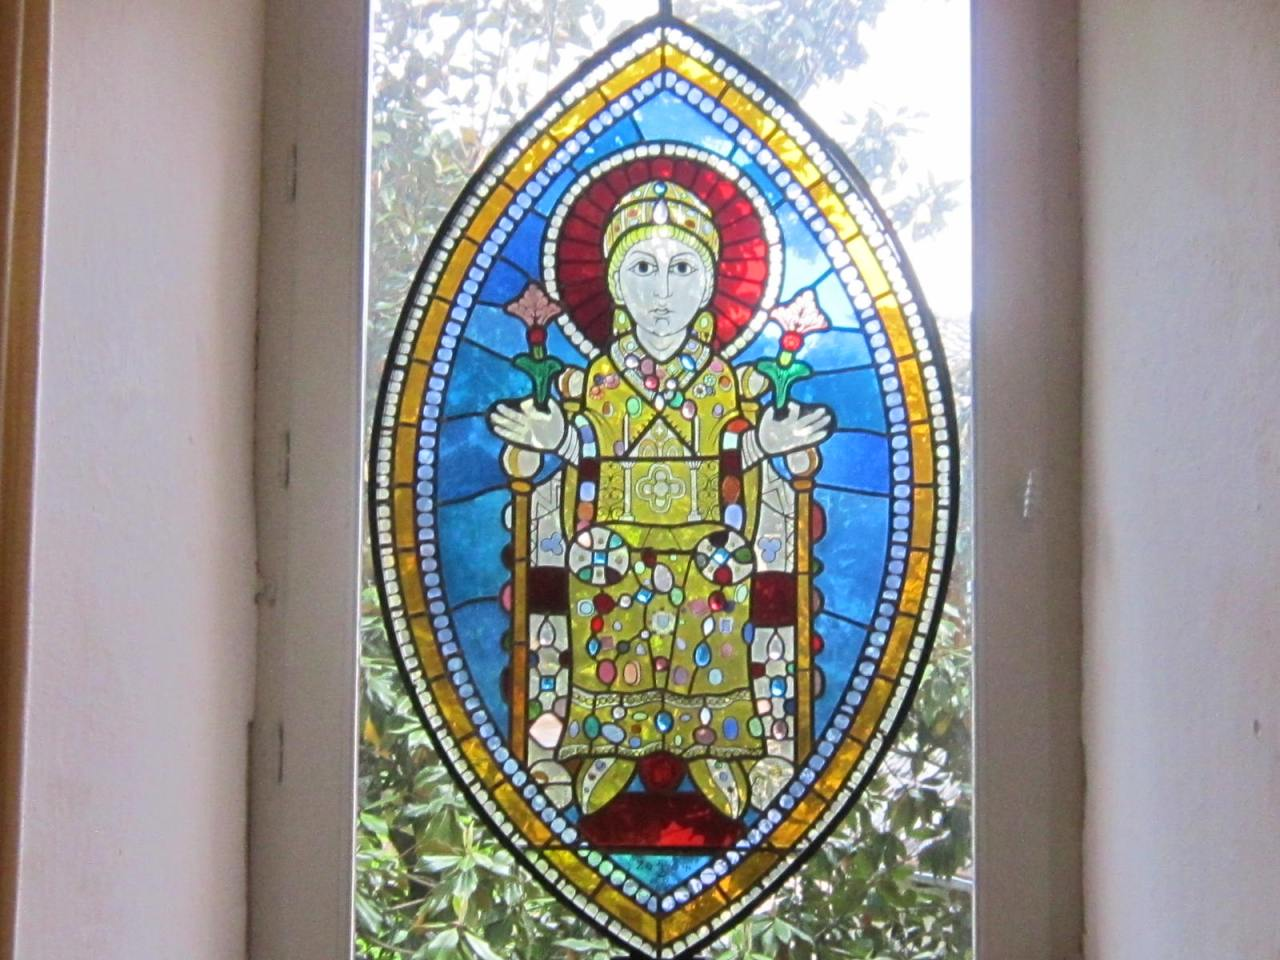 Sainte Foy stained glass window at Conques on Le PuyWay